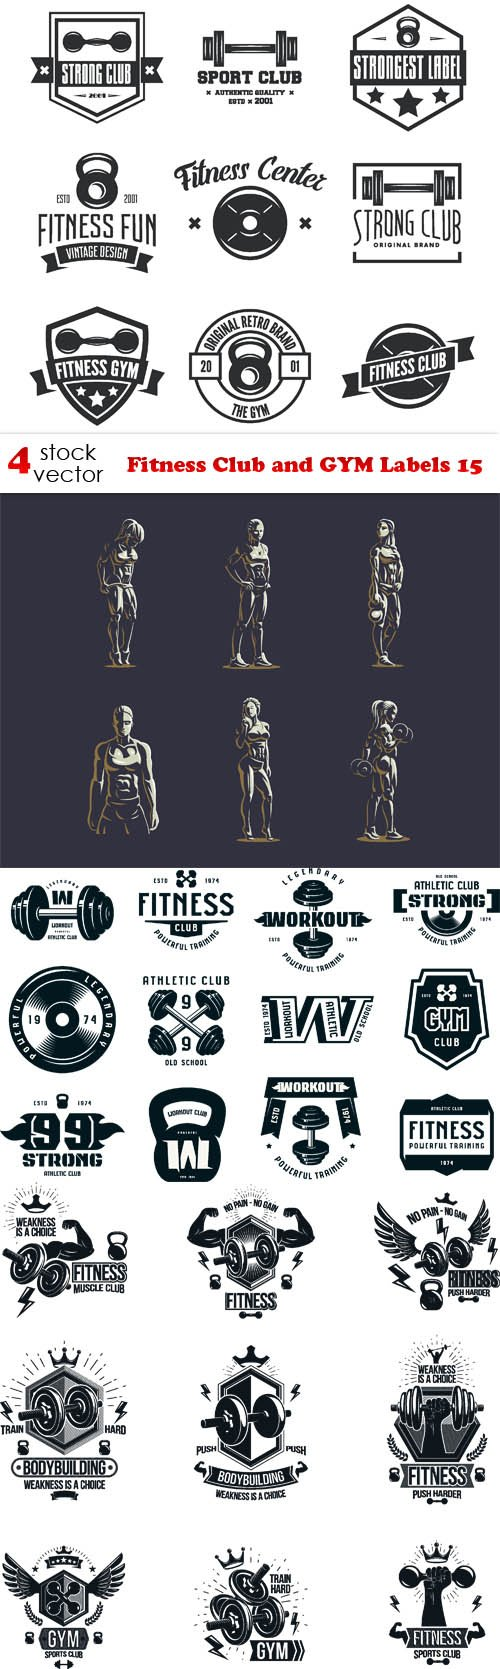 Vectors - Fitness Club and GYM Labels 15